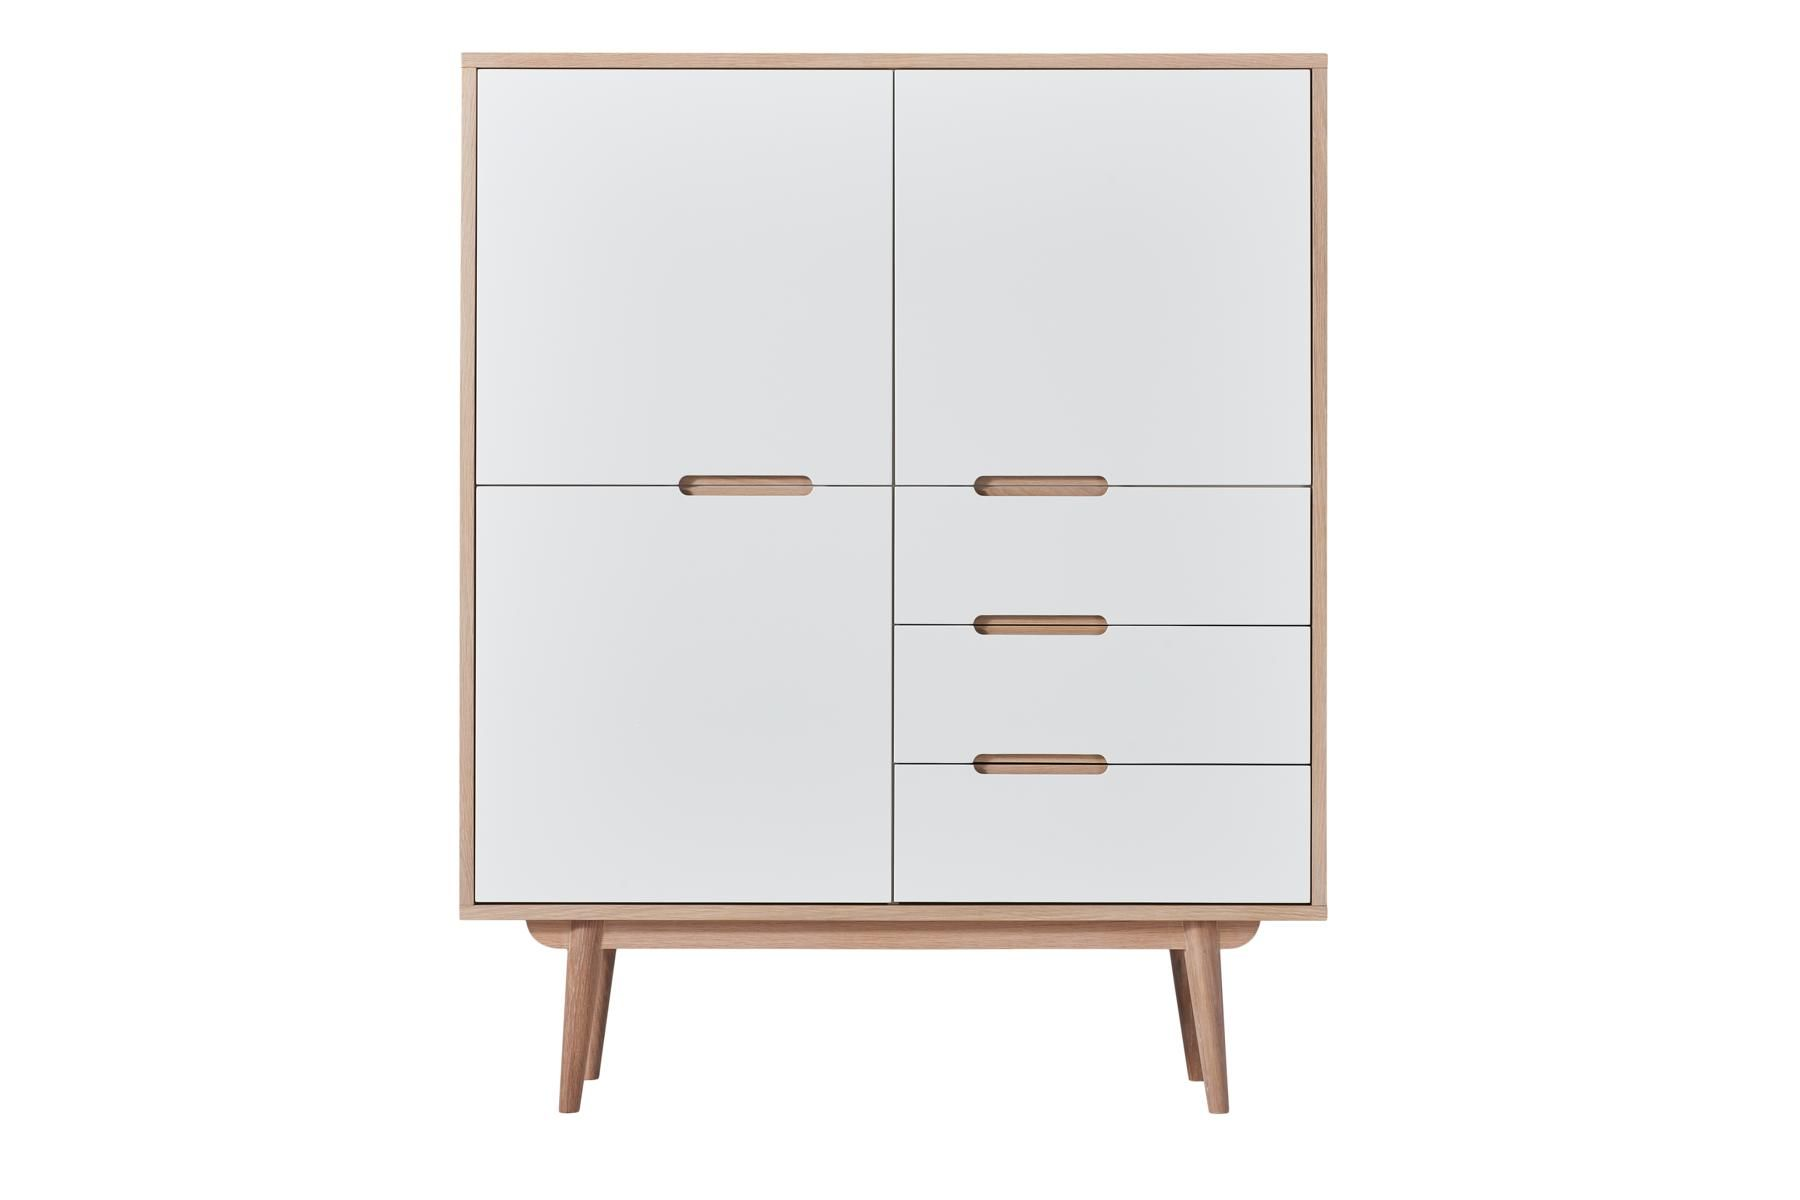 Pin by cagusto my home my style on mit flemma bringst du wunder dining rooms closet storage bedroom living room chest of drawers dining room dining sets dzzzfo